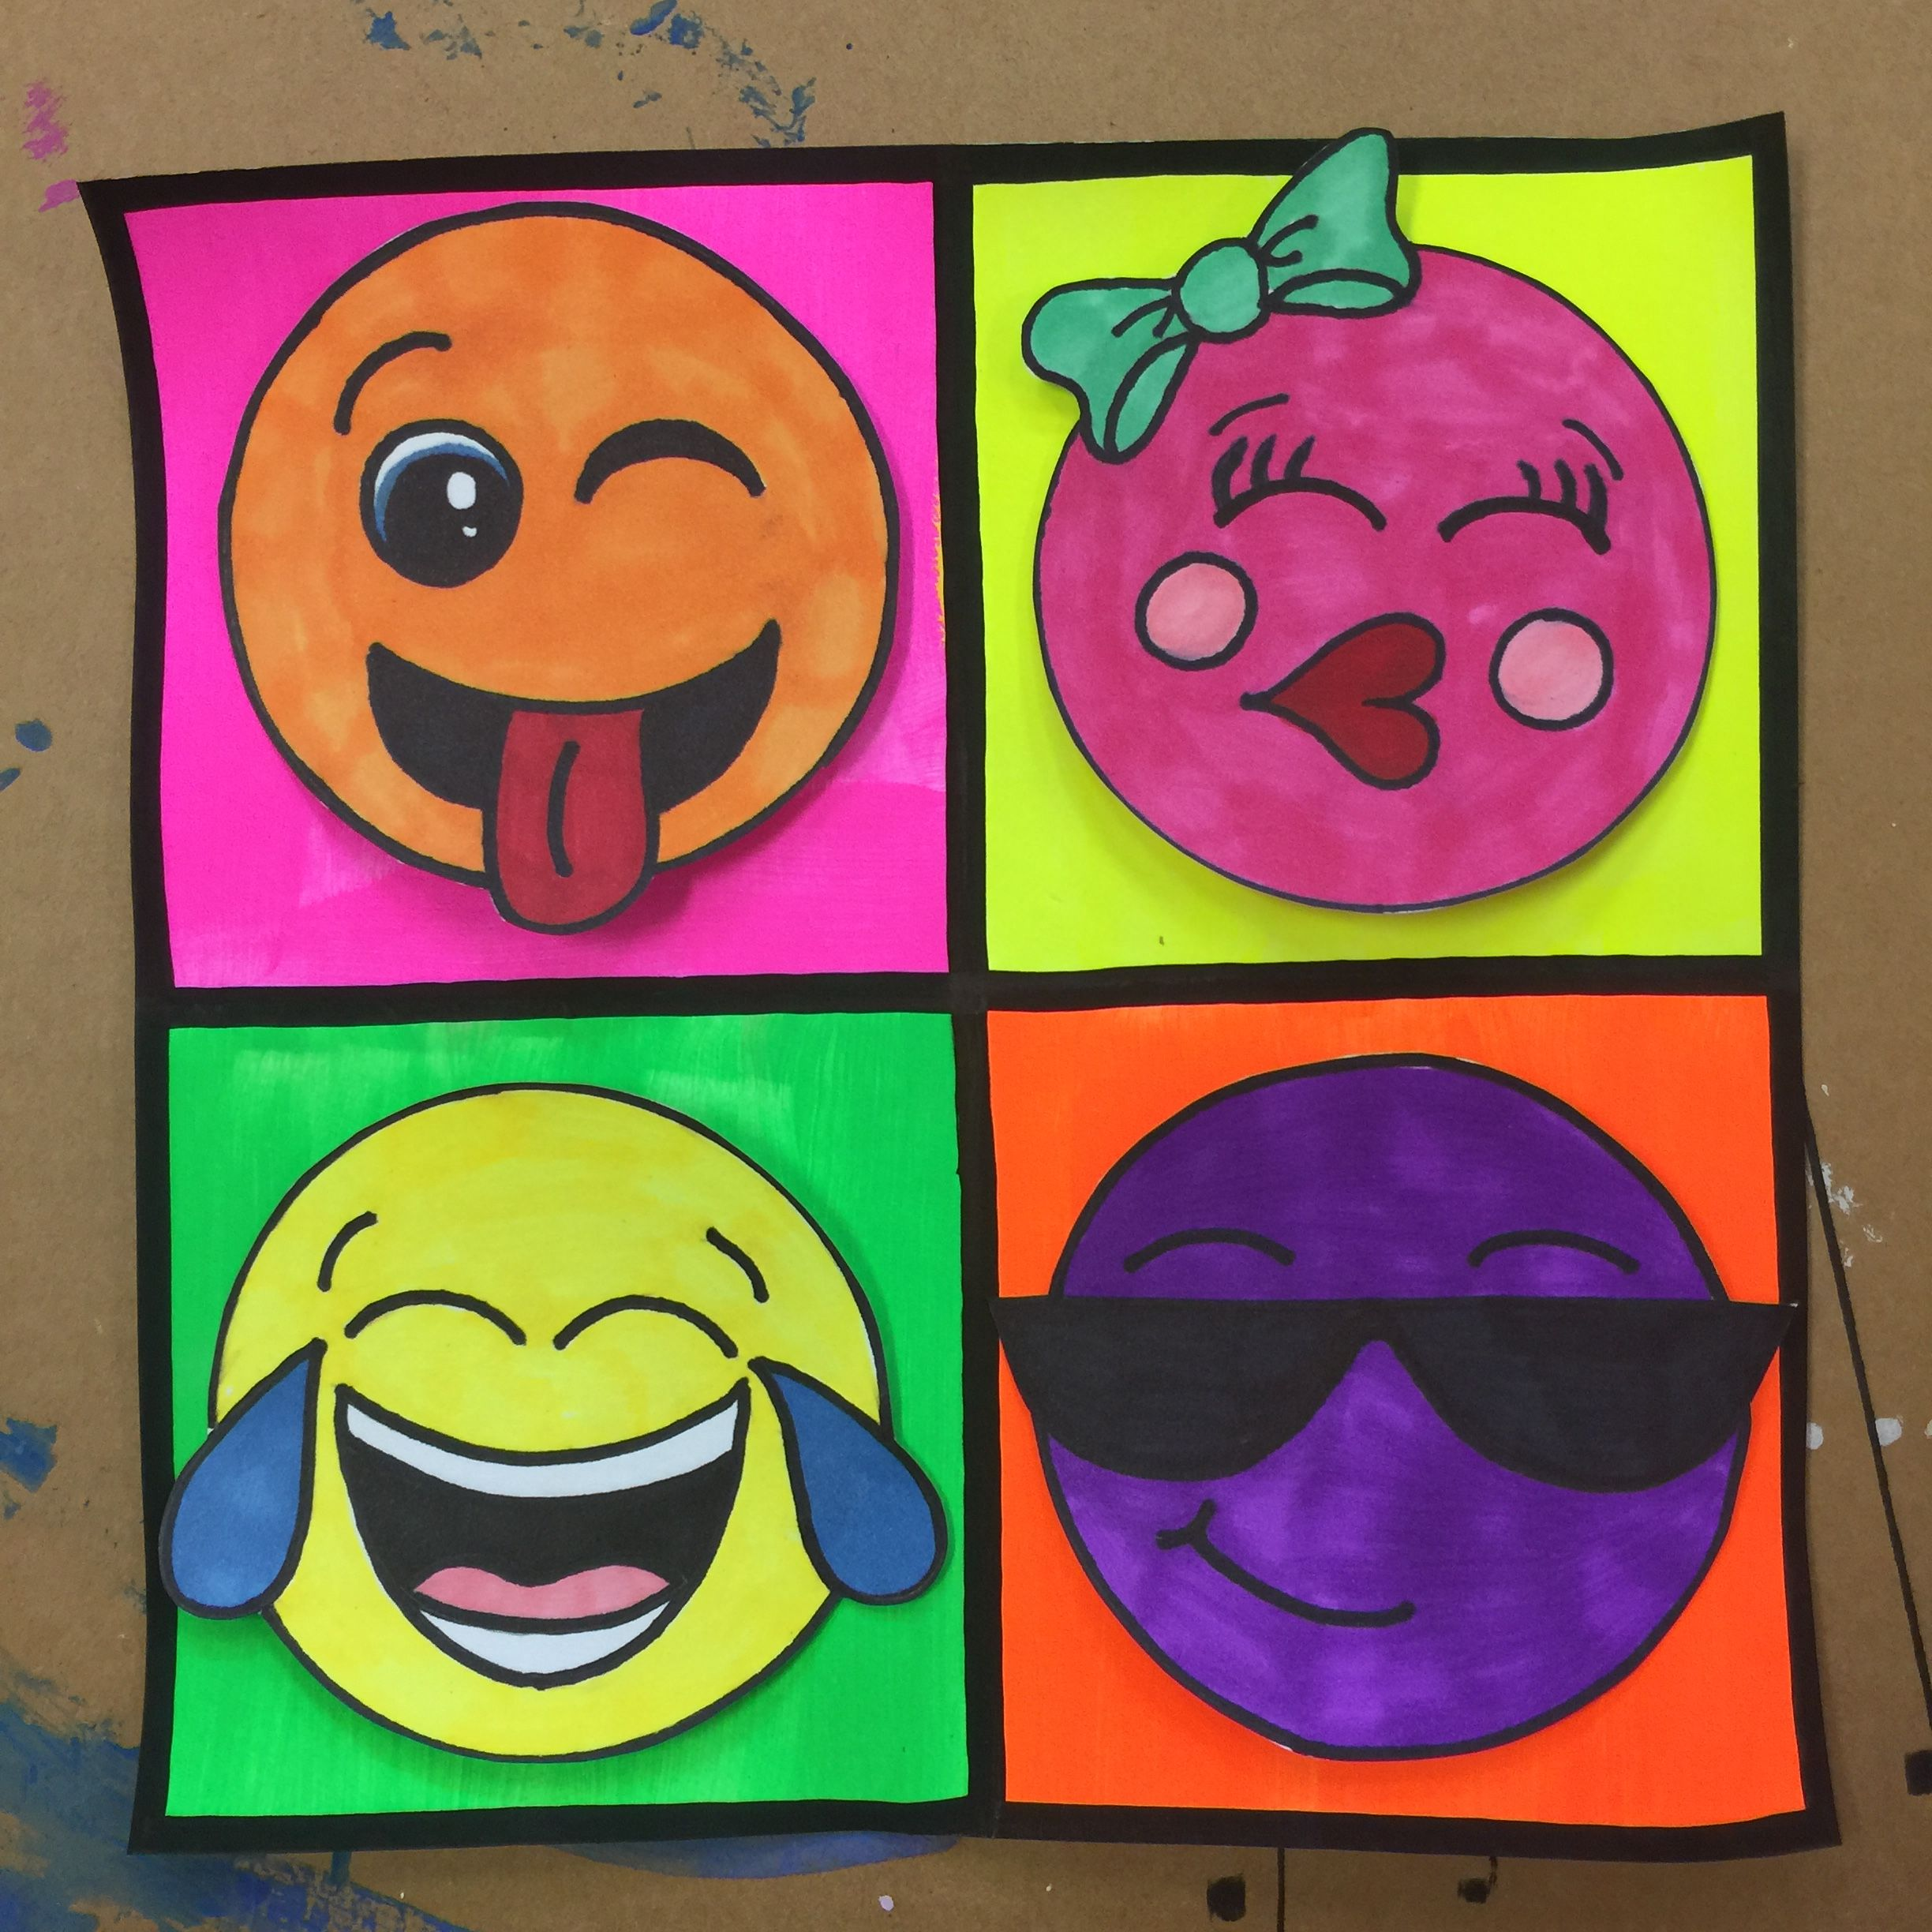 Pop Art Inspired Emoji Art Project For 3rd 5th Grade Students Art Created By Meredith Terry